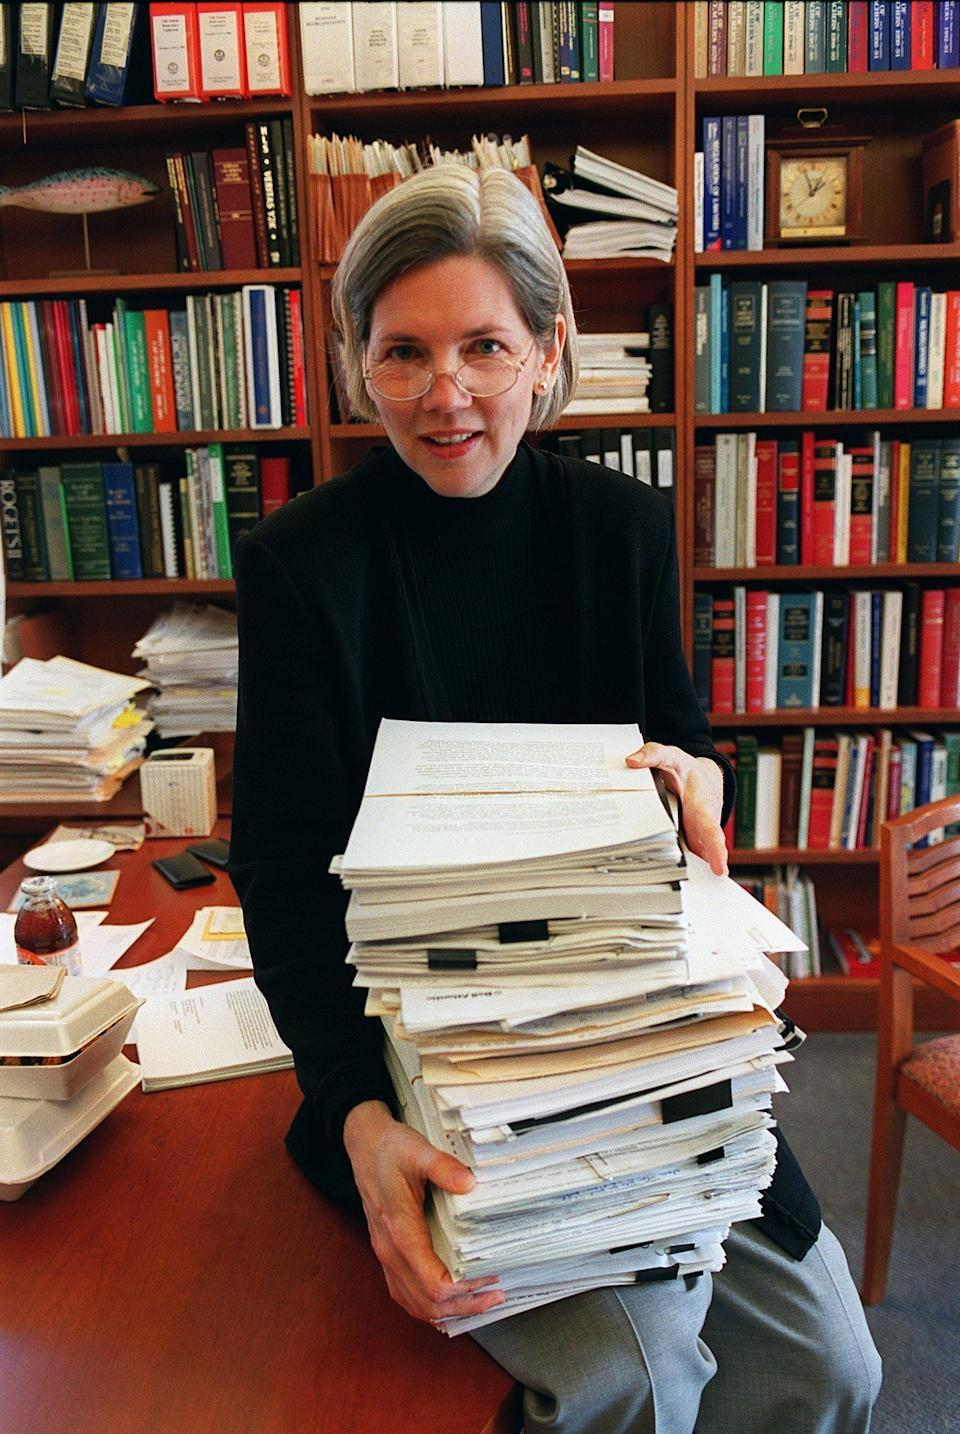 Warren, pictured in 2001 when she was a Harvard Law School professor, was a leading opponent of the bankruptcy bills championed by Biden. (Photo: Boston Globe via Getty Images)